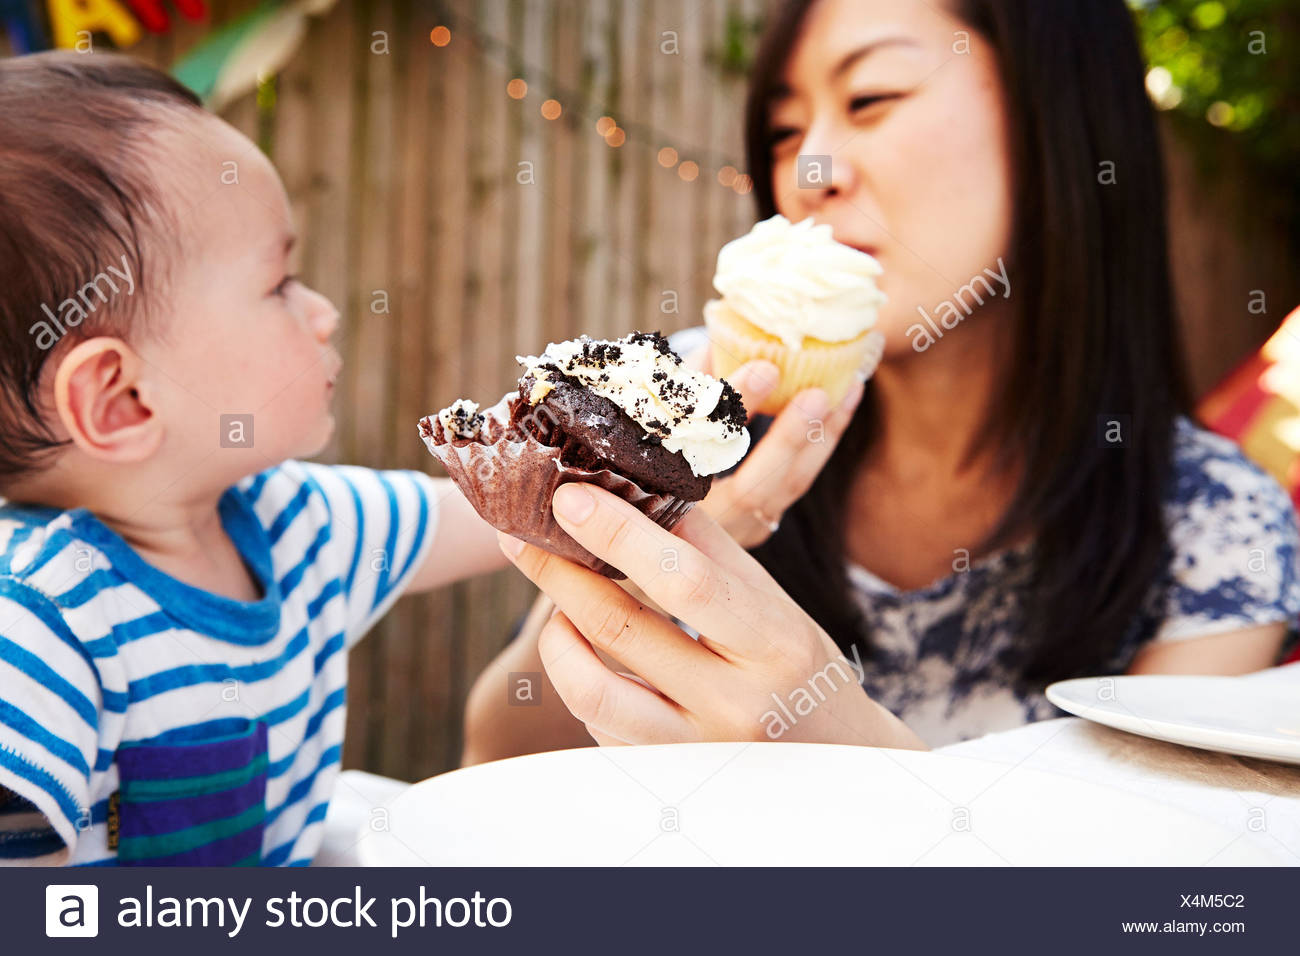 Mother and son feeding each-other cupcakes Stock Photo